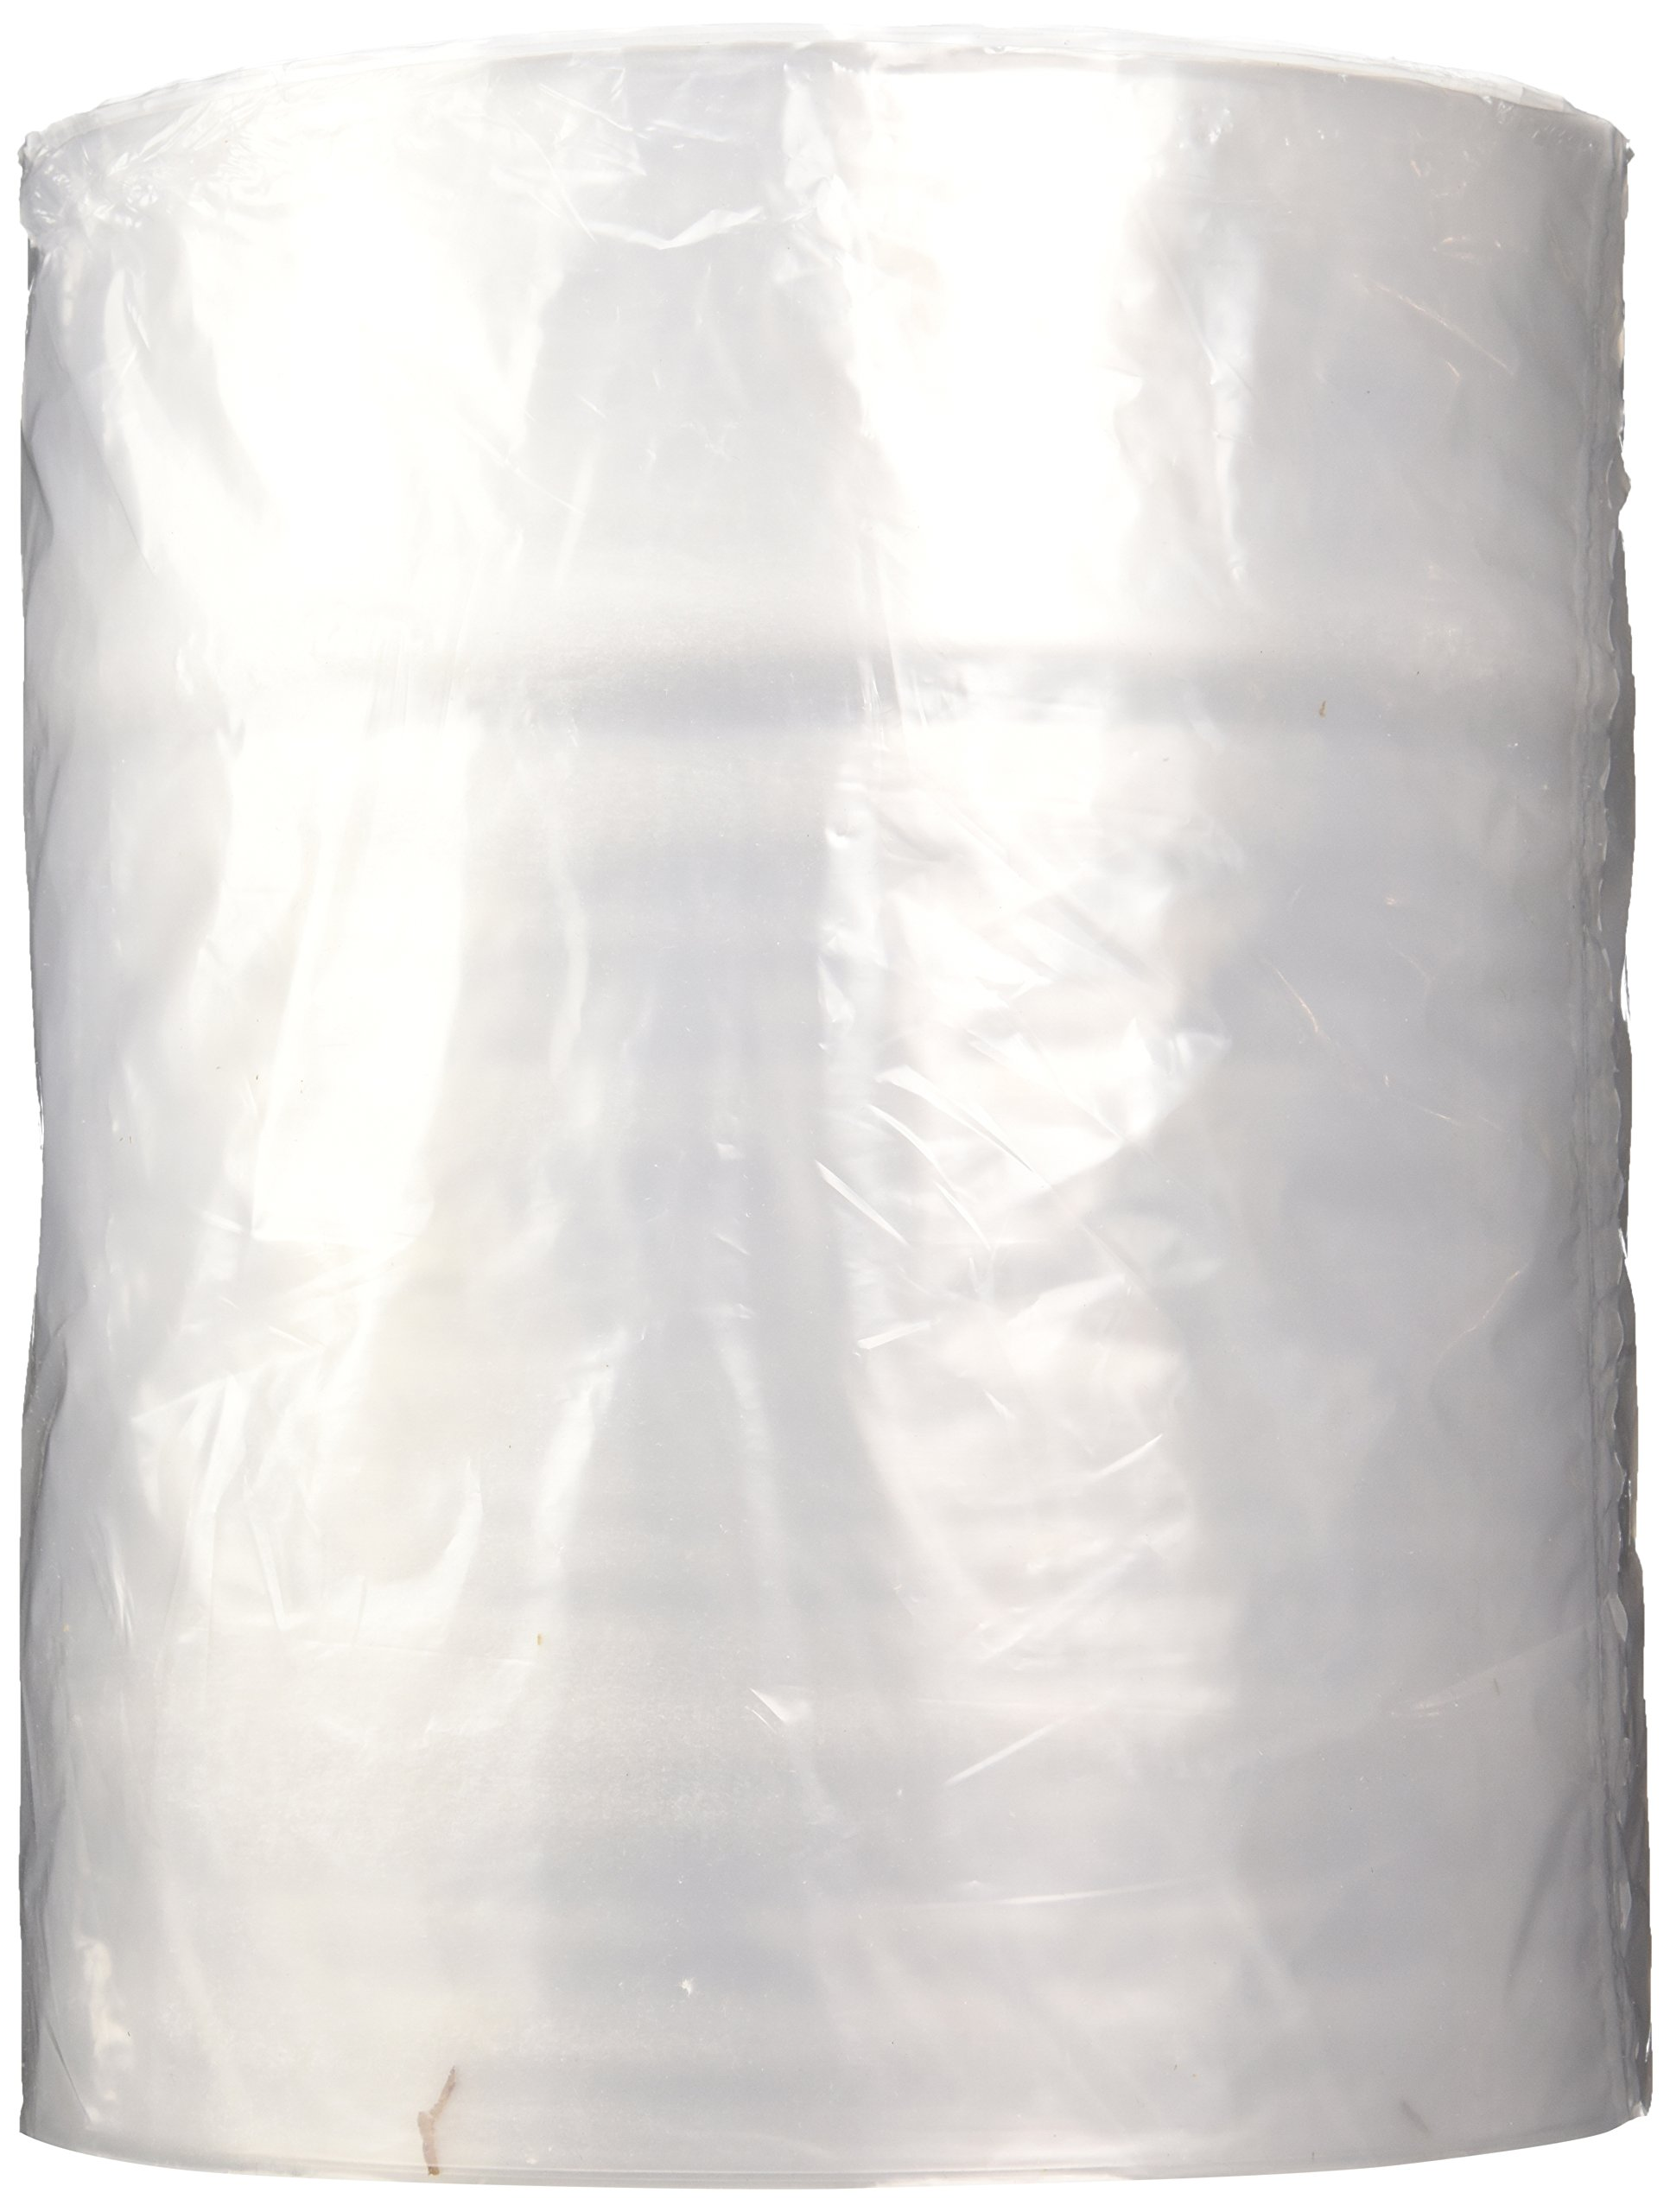 Sun Seed Company BSS90002 900-Pack Pet Seed Roll-on Waste Bags